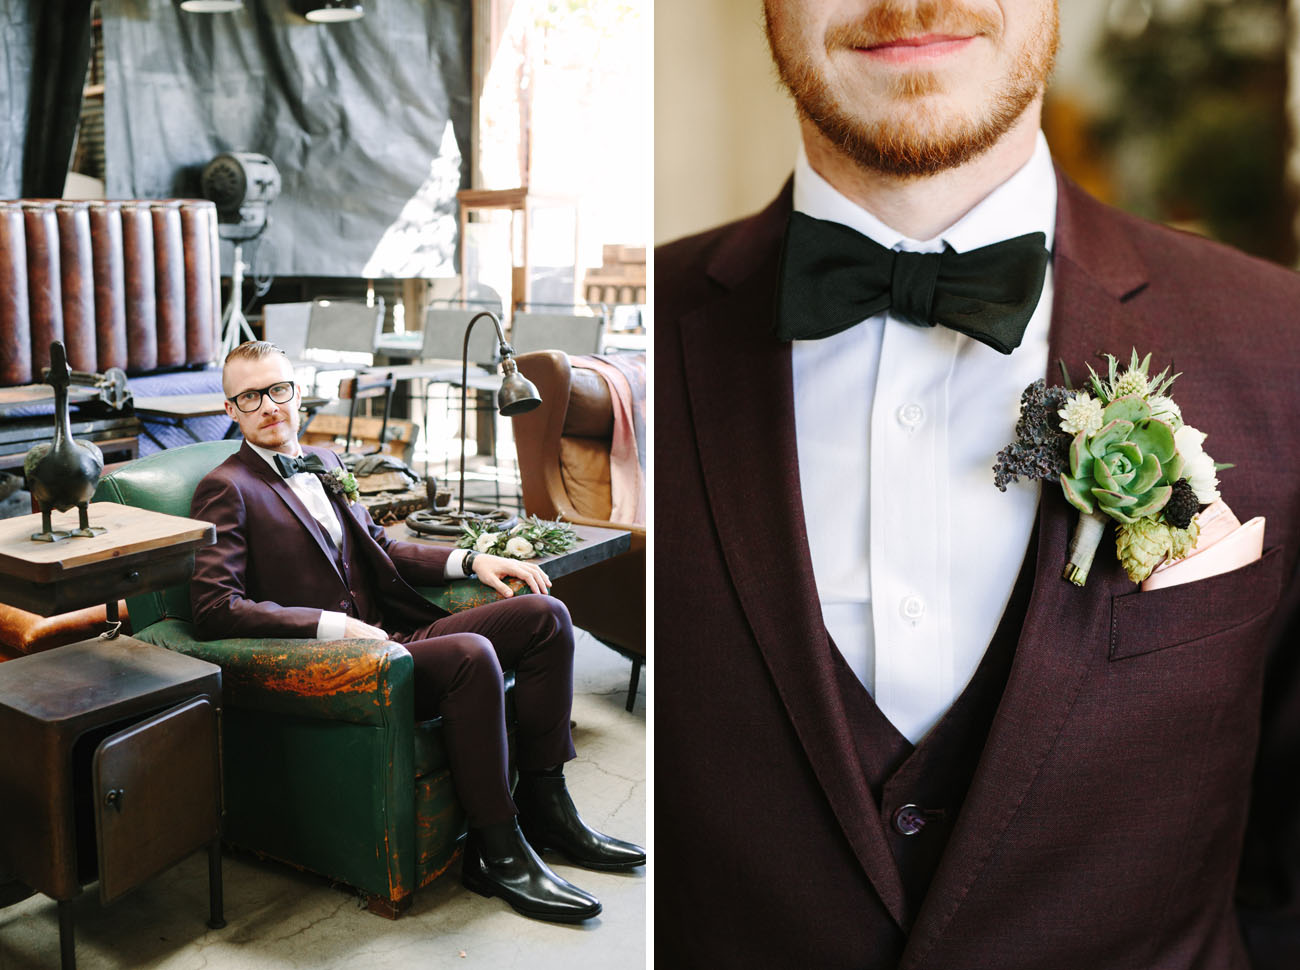 The groom was wearing a chic suit from The Black Tux in burgundy shade